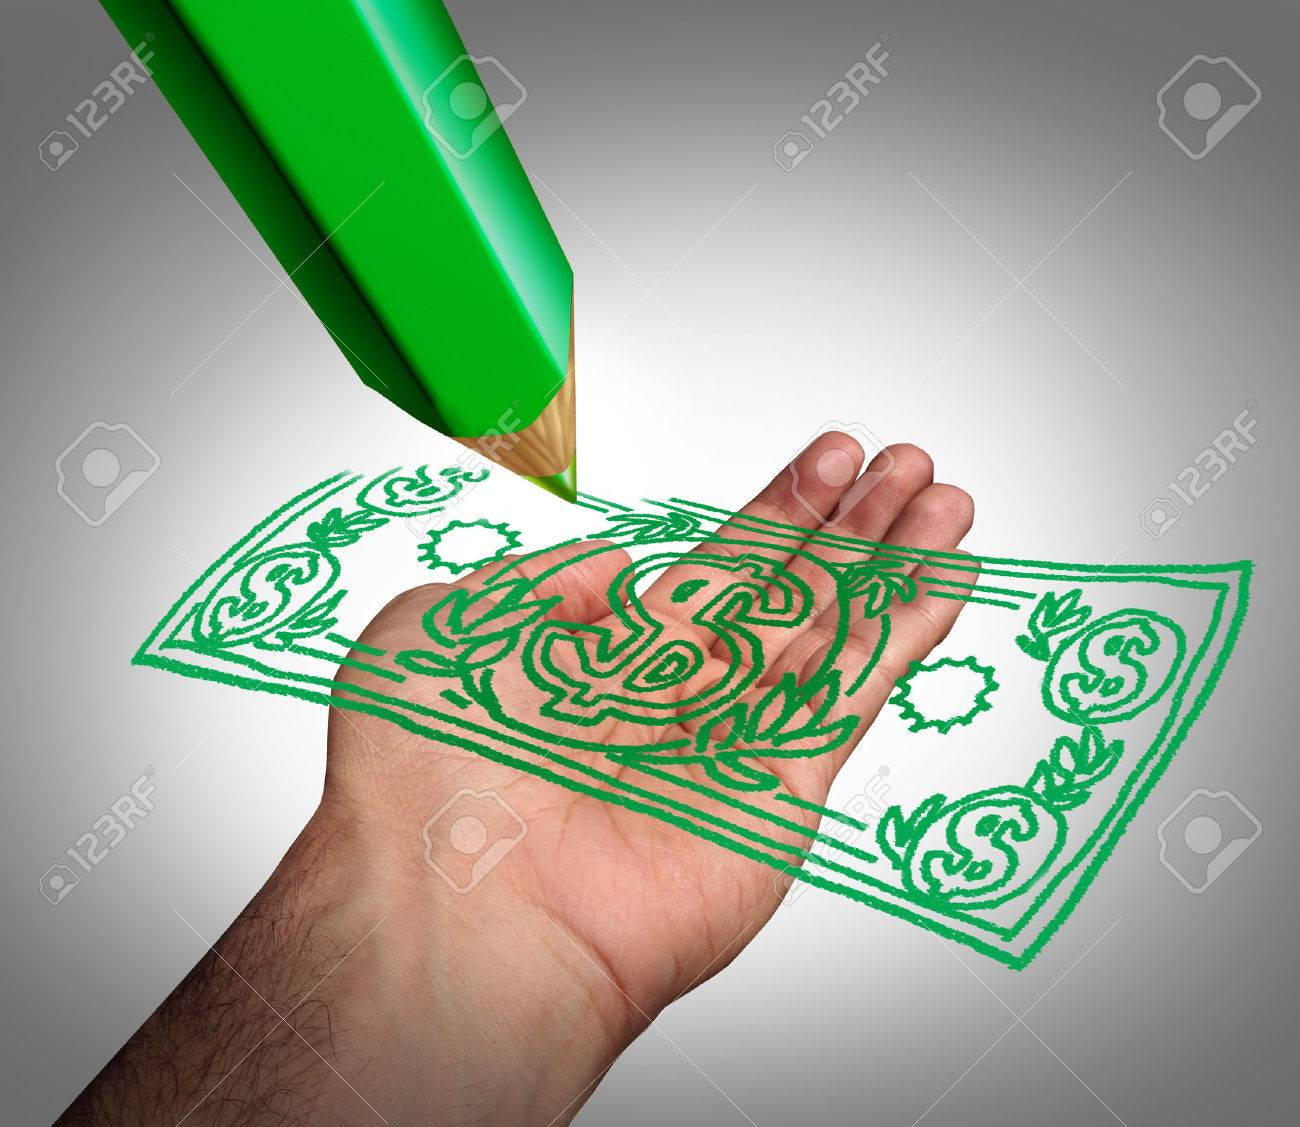 Making Money Business Concept As A Green Pencil Drawing A Dollar